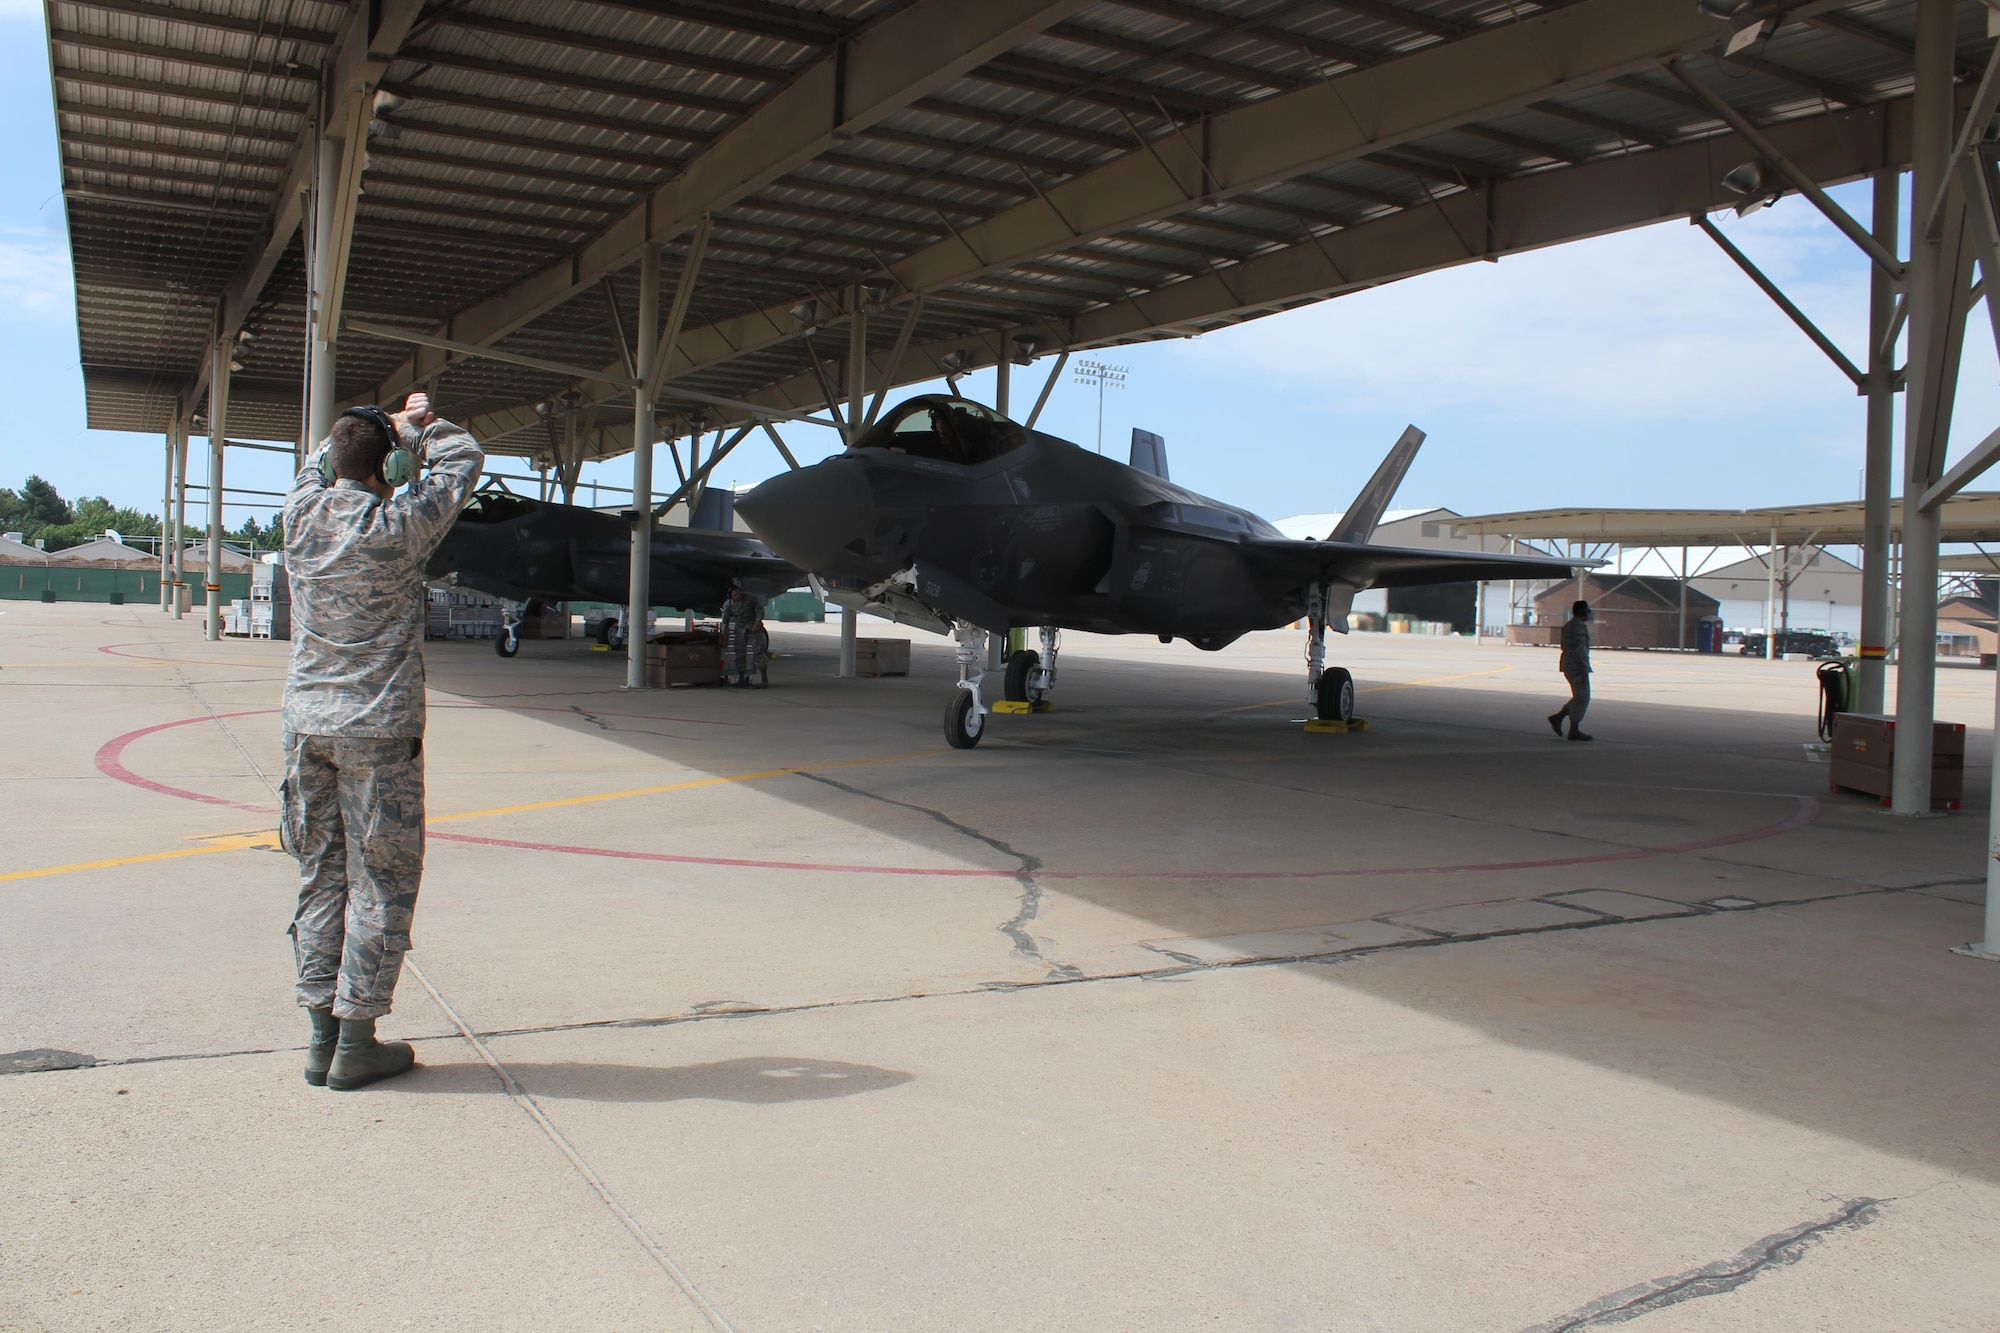 Airman 1st Class Matthew Clark with the 34th Aircraft Maintenance Unit directs the pilot who flew the 388th Fighter Wing's 24th aircraft assigned to the 34th Fighter Squadron / 34th AMU June 21. The 24th aircraft is significant because it completes the first full F-35A squadron at an operational unit. (U.S. Air Force photo/Donovan K Potter)